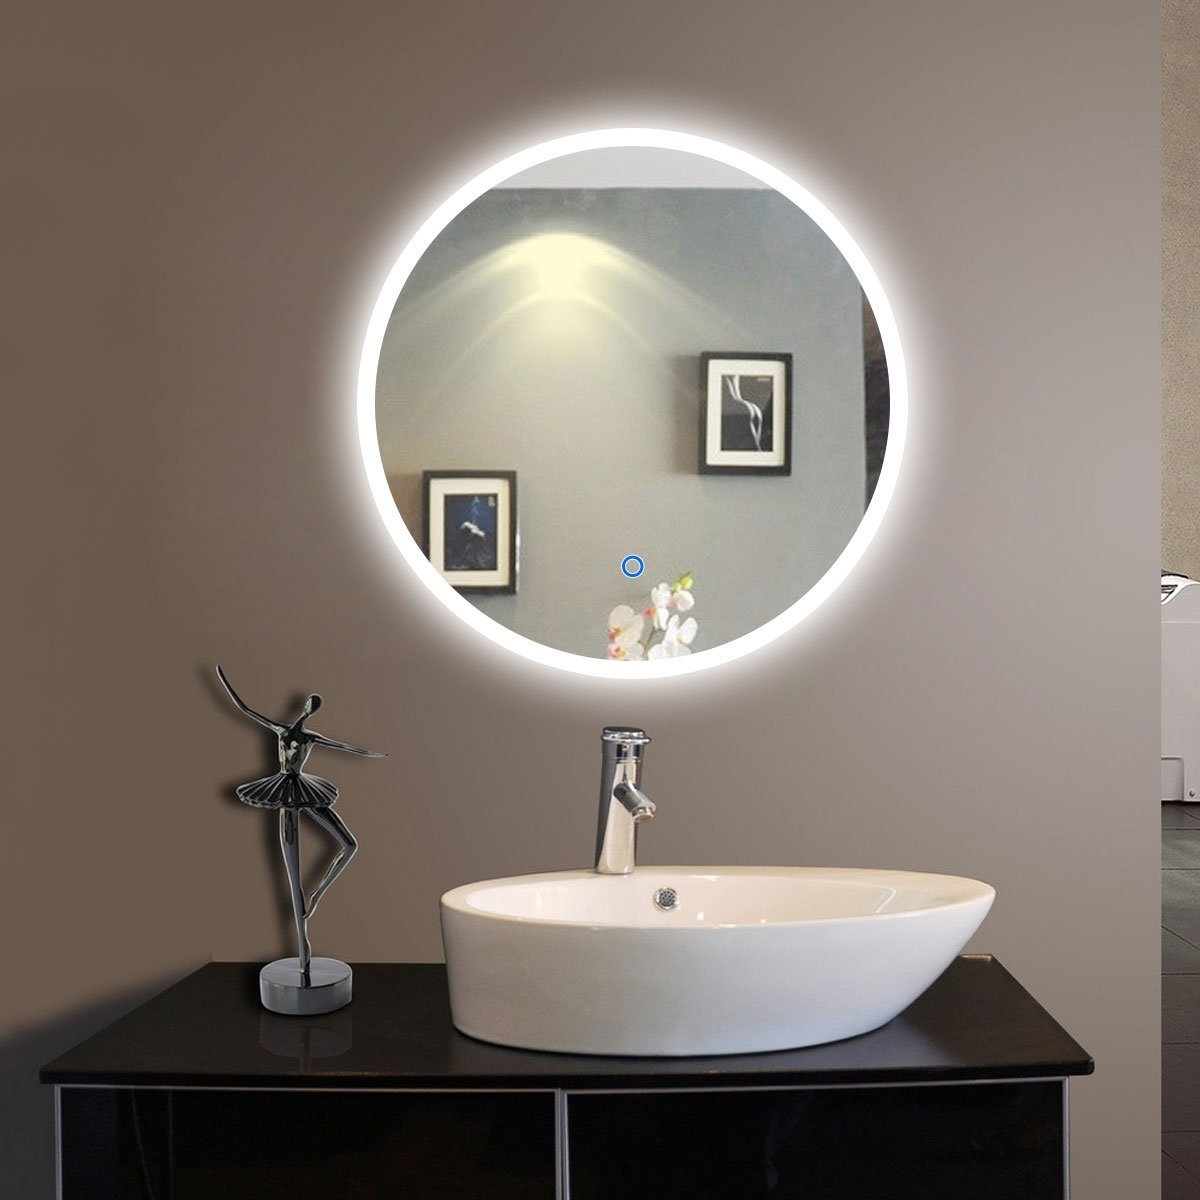 Lighted Vanity Mirror Cabinet : LED-vanity-bathroom-mirrors-bathroom-vanity-cabinets-illuminated-backlit-rectangle-frameless ...